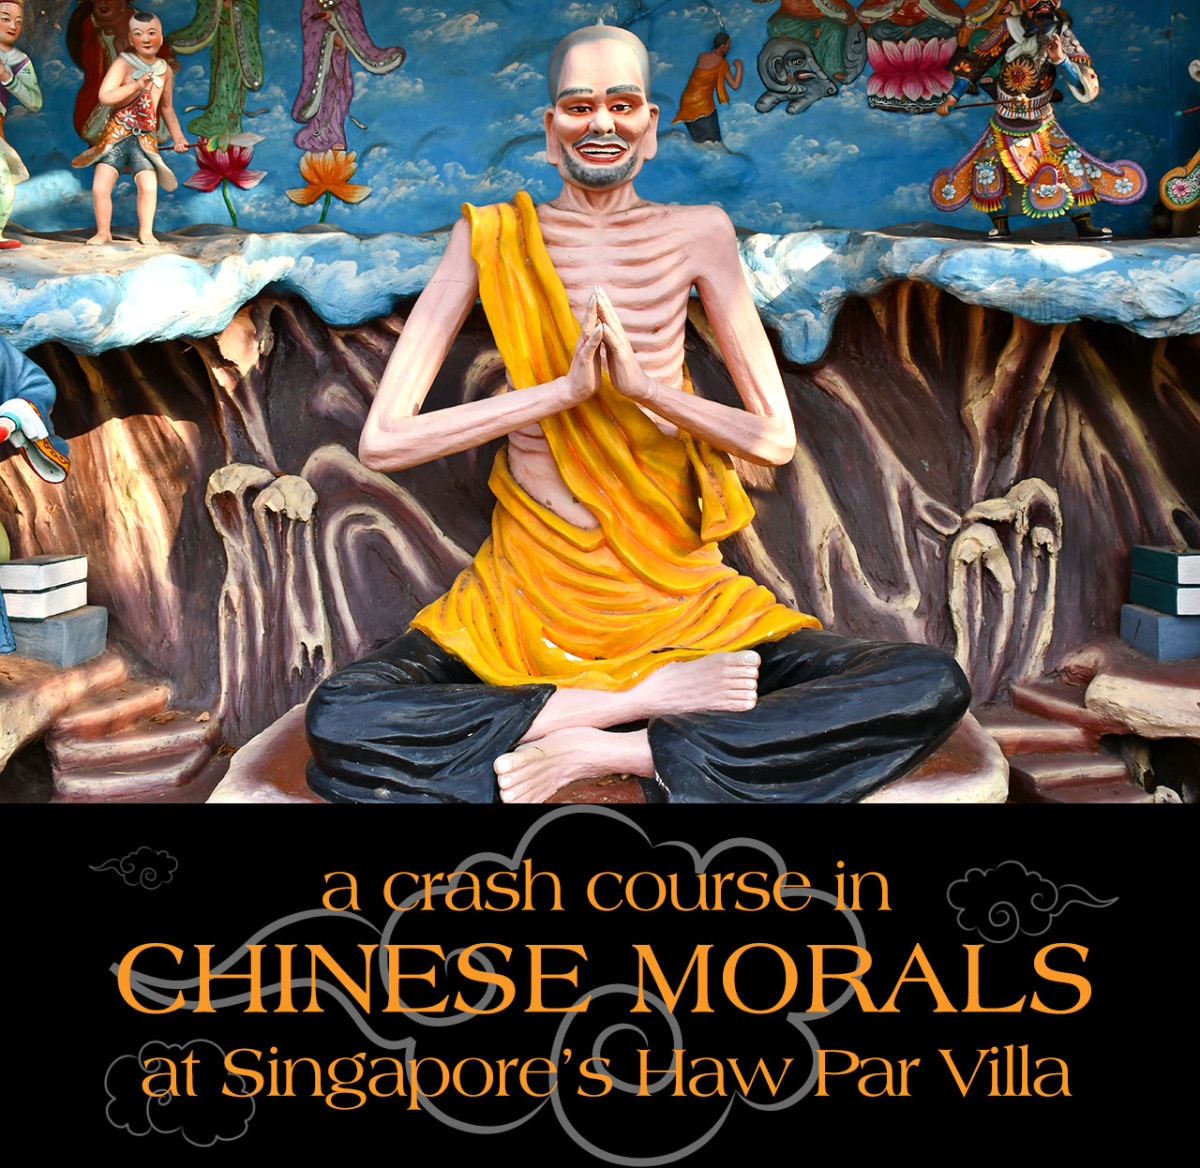 Spend an afternoon at Haw Par Villa in Singapore, and you'd be an informal expert on Chinese morals.